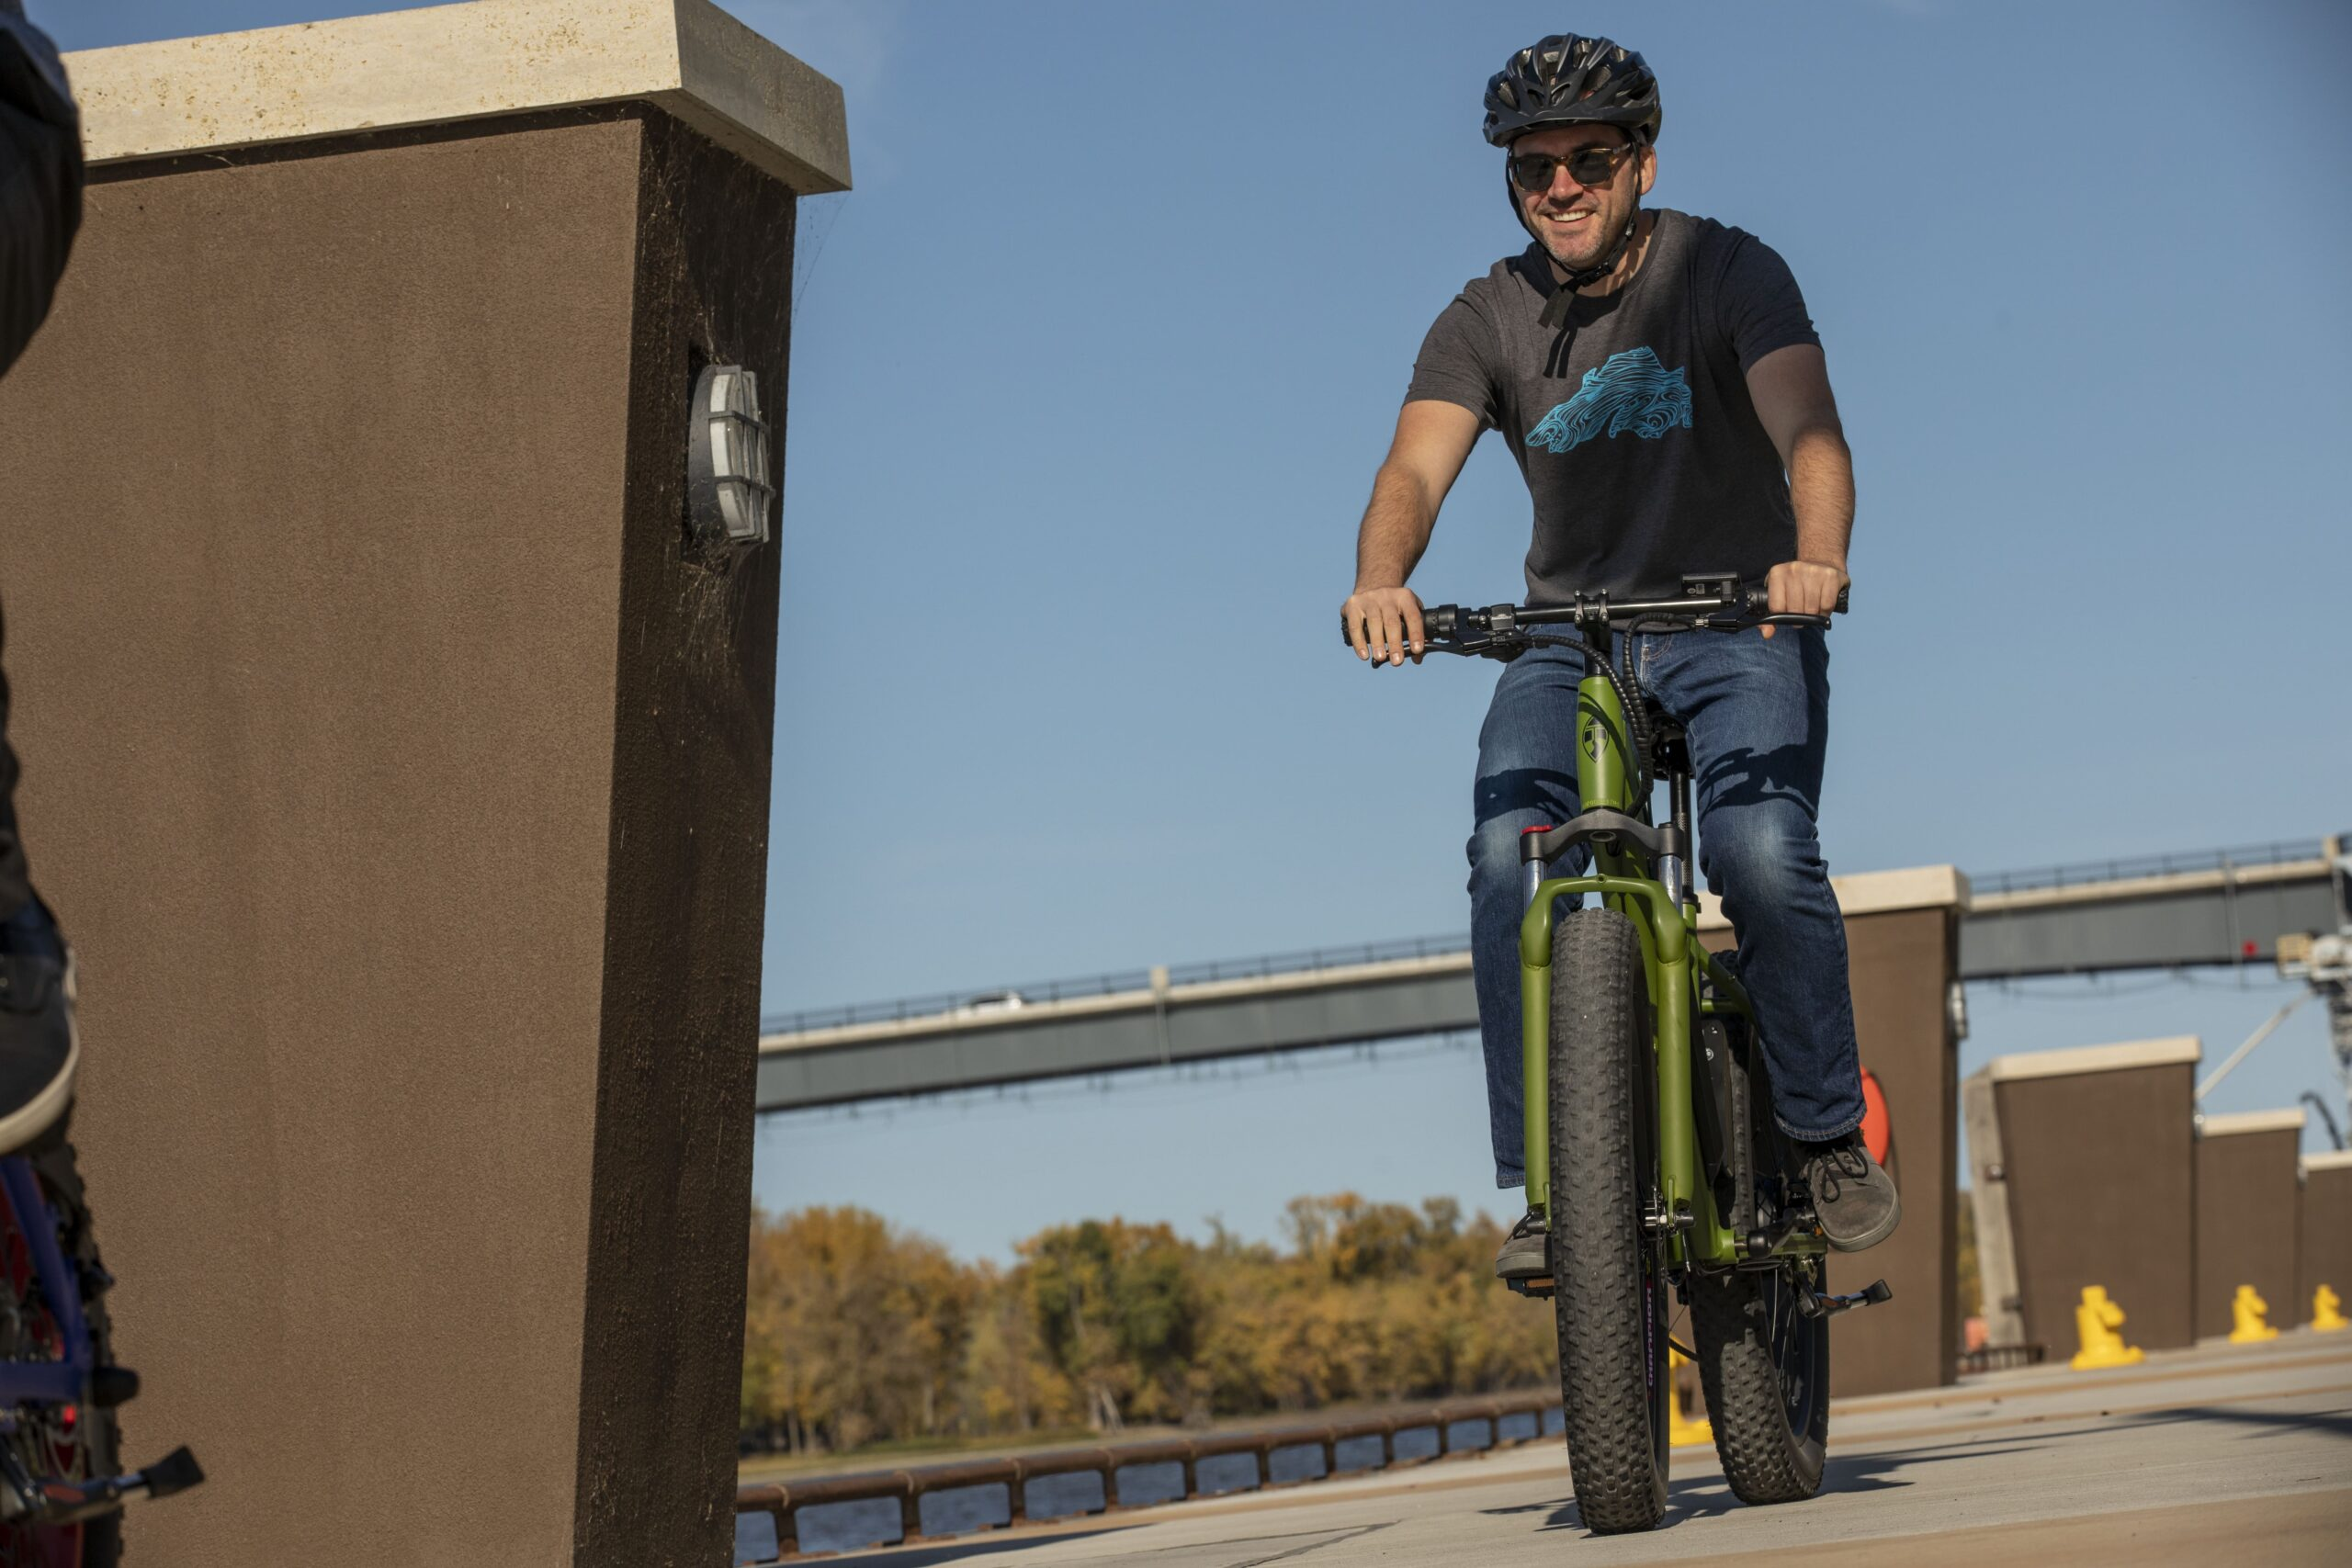 man riding green ebike on cement